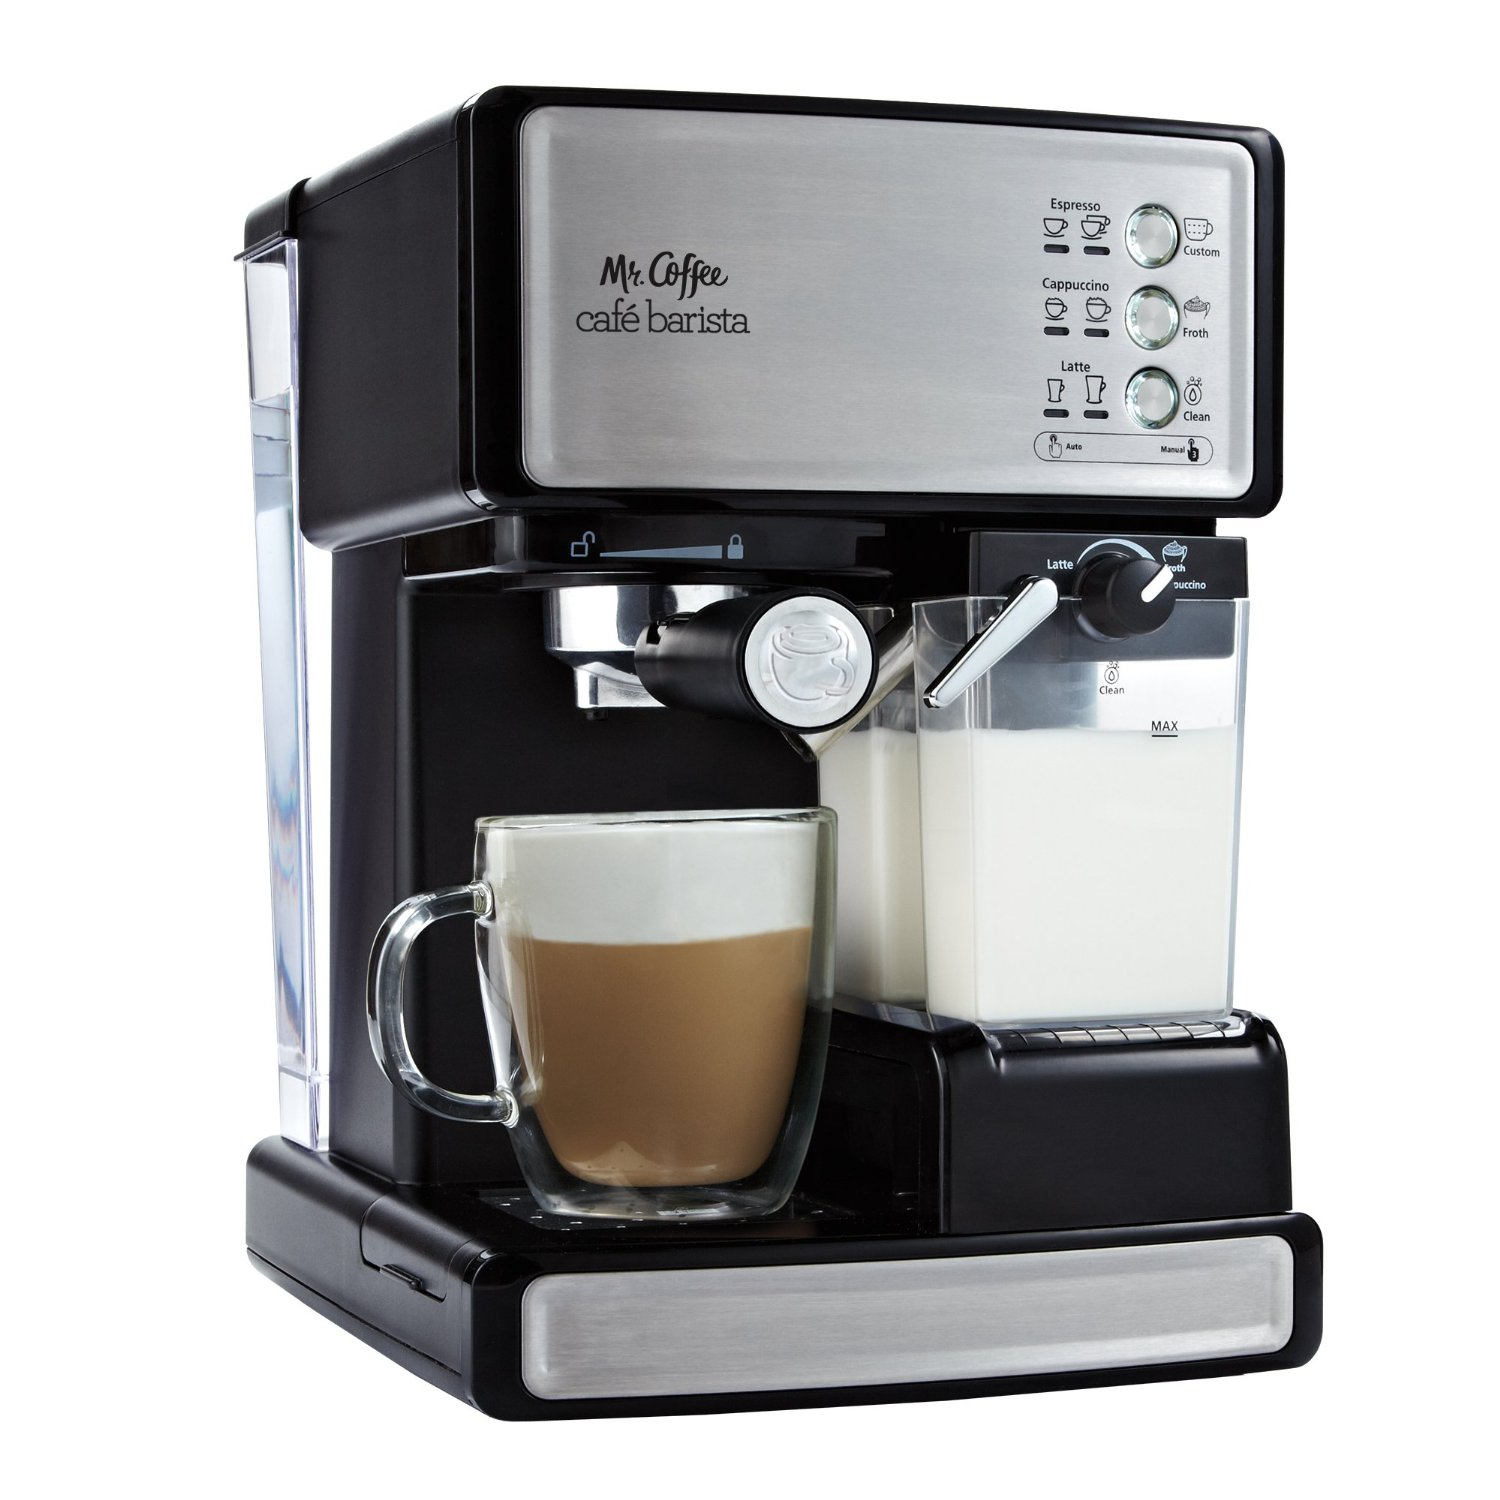 Coffee Maker Barista : 10 Best Coffee Makers for Home At Affordable Prices